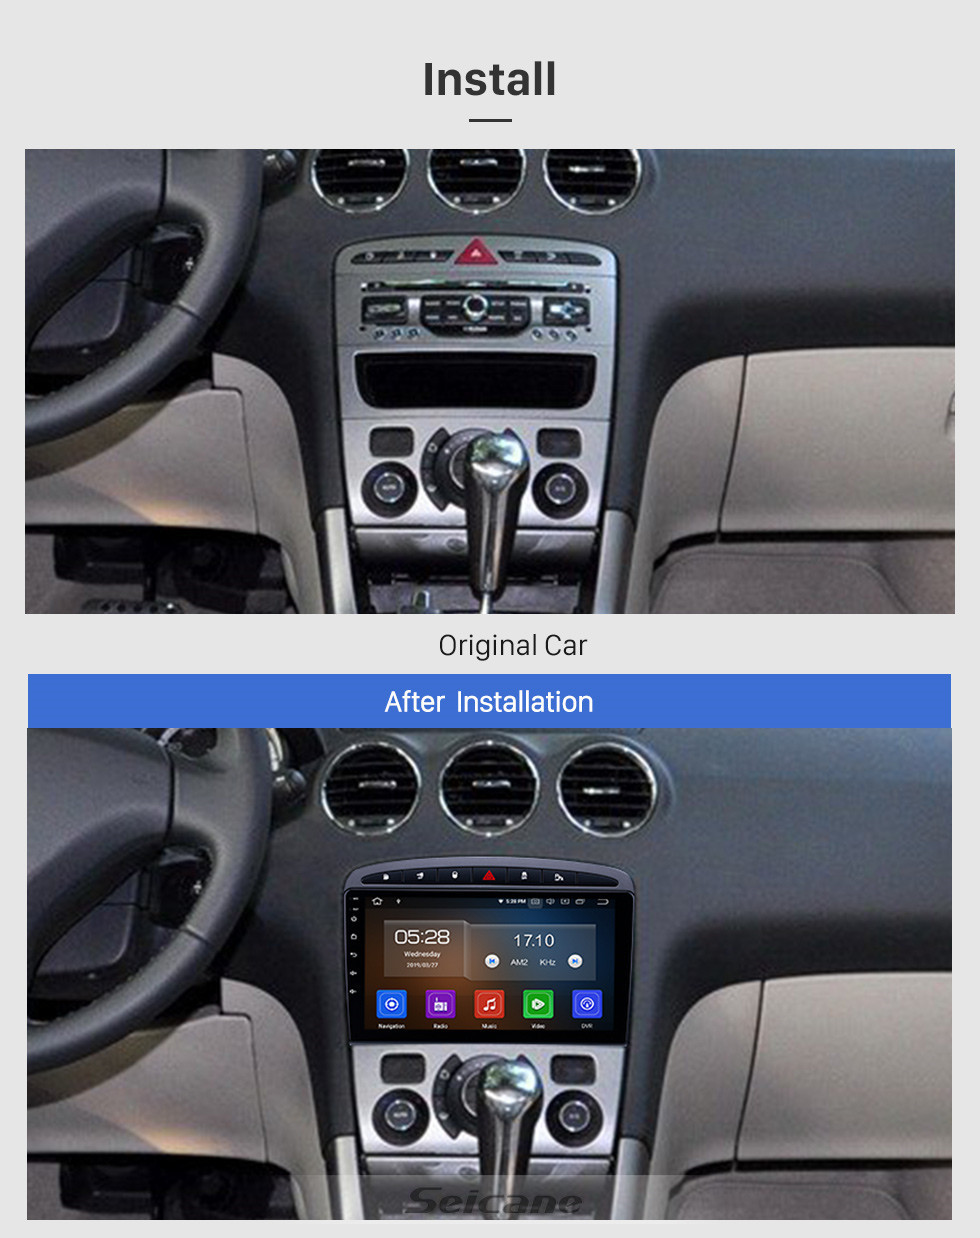 Seicane 2010 2011 Peugeot 308 408 Android 10.0 9 inch Bluetooth Radio GPS Navi HD Touchscreen Stereo USB Mirror Link Aux SWC support DVD 4G WIFI DVR Carplay